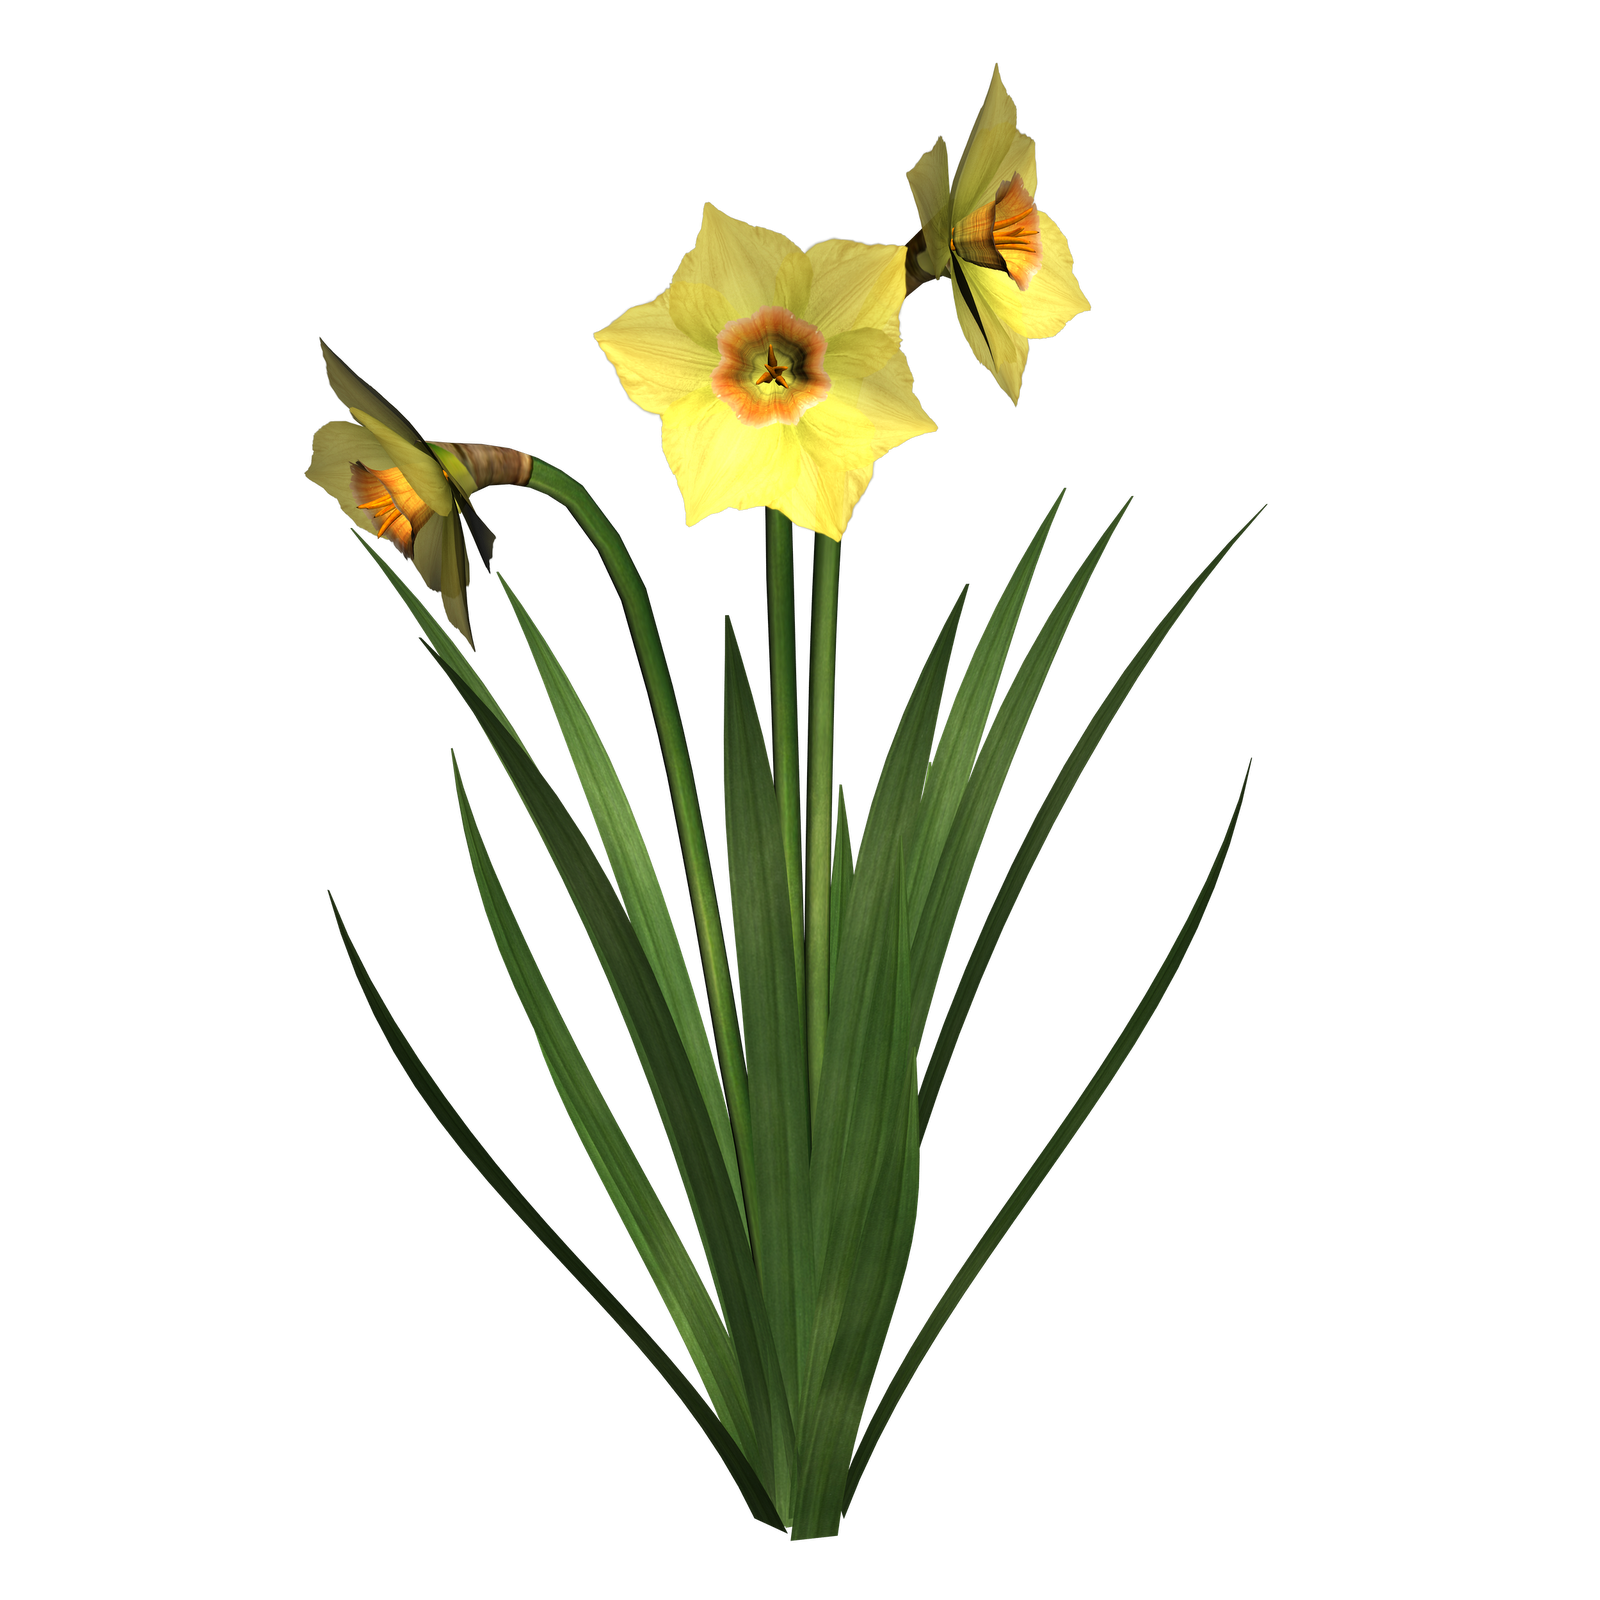 Free daffodils pictures download. Daffodil clipart tulip image free library